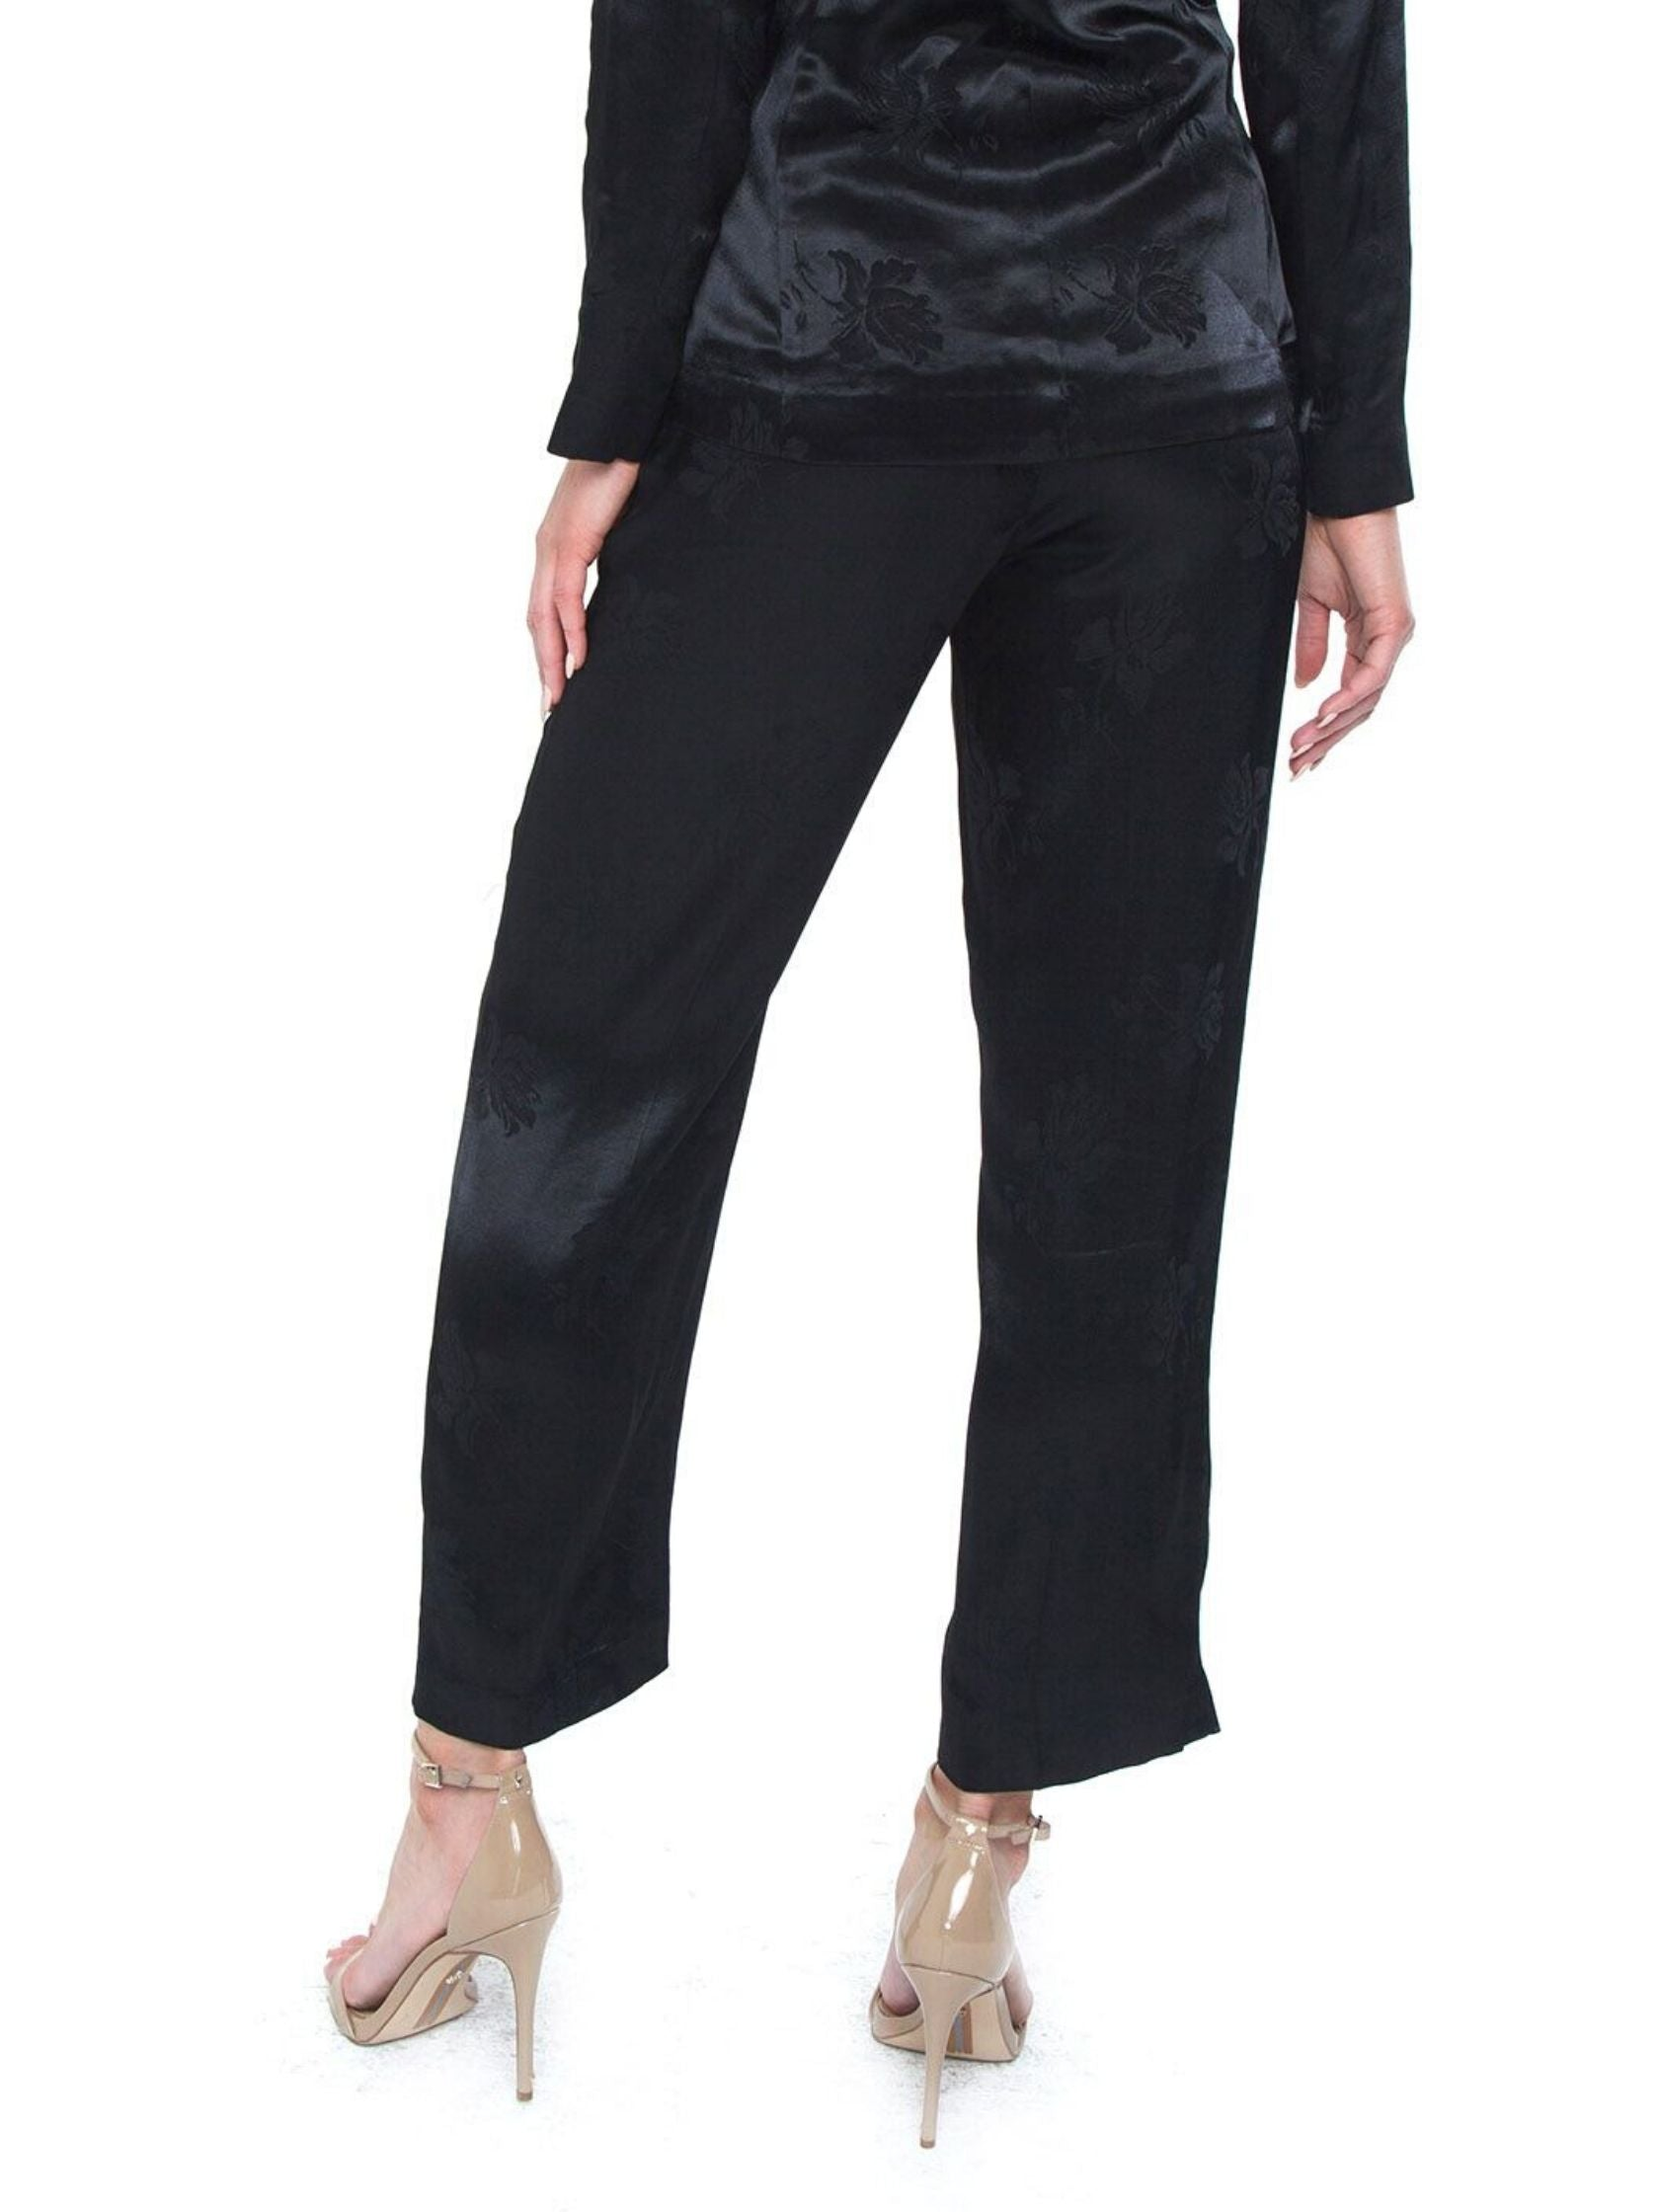 Women outfit in a pants rental from 1.STATE called Floral Jacquard Wide Leg Pant